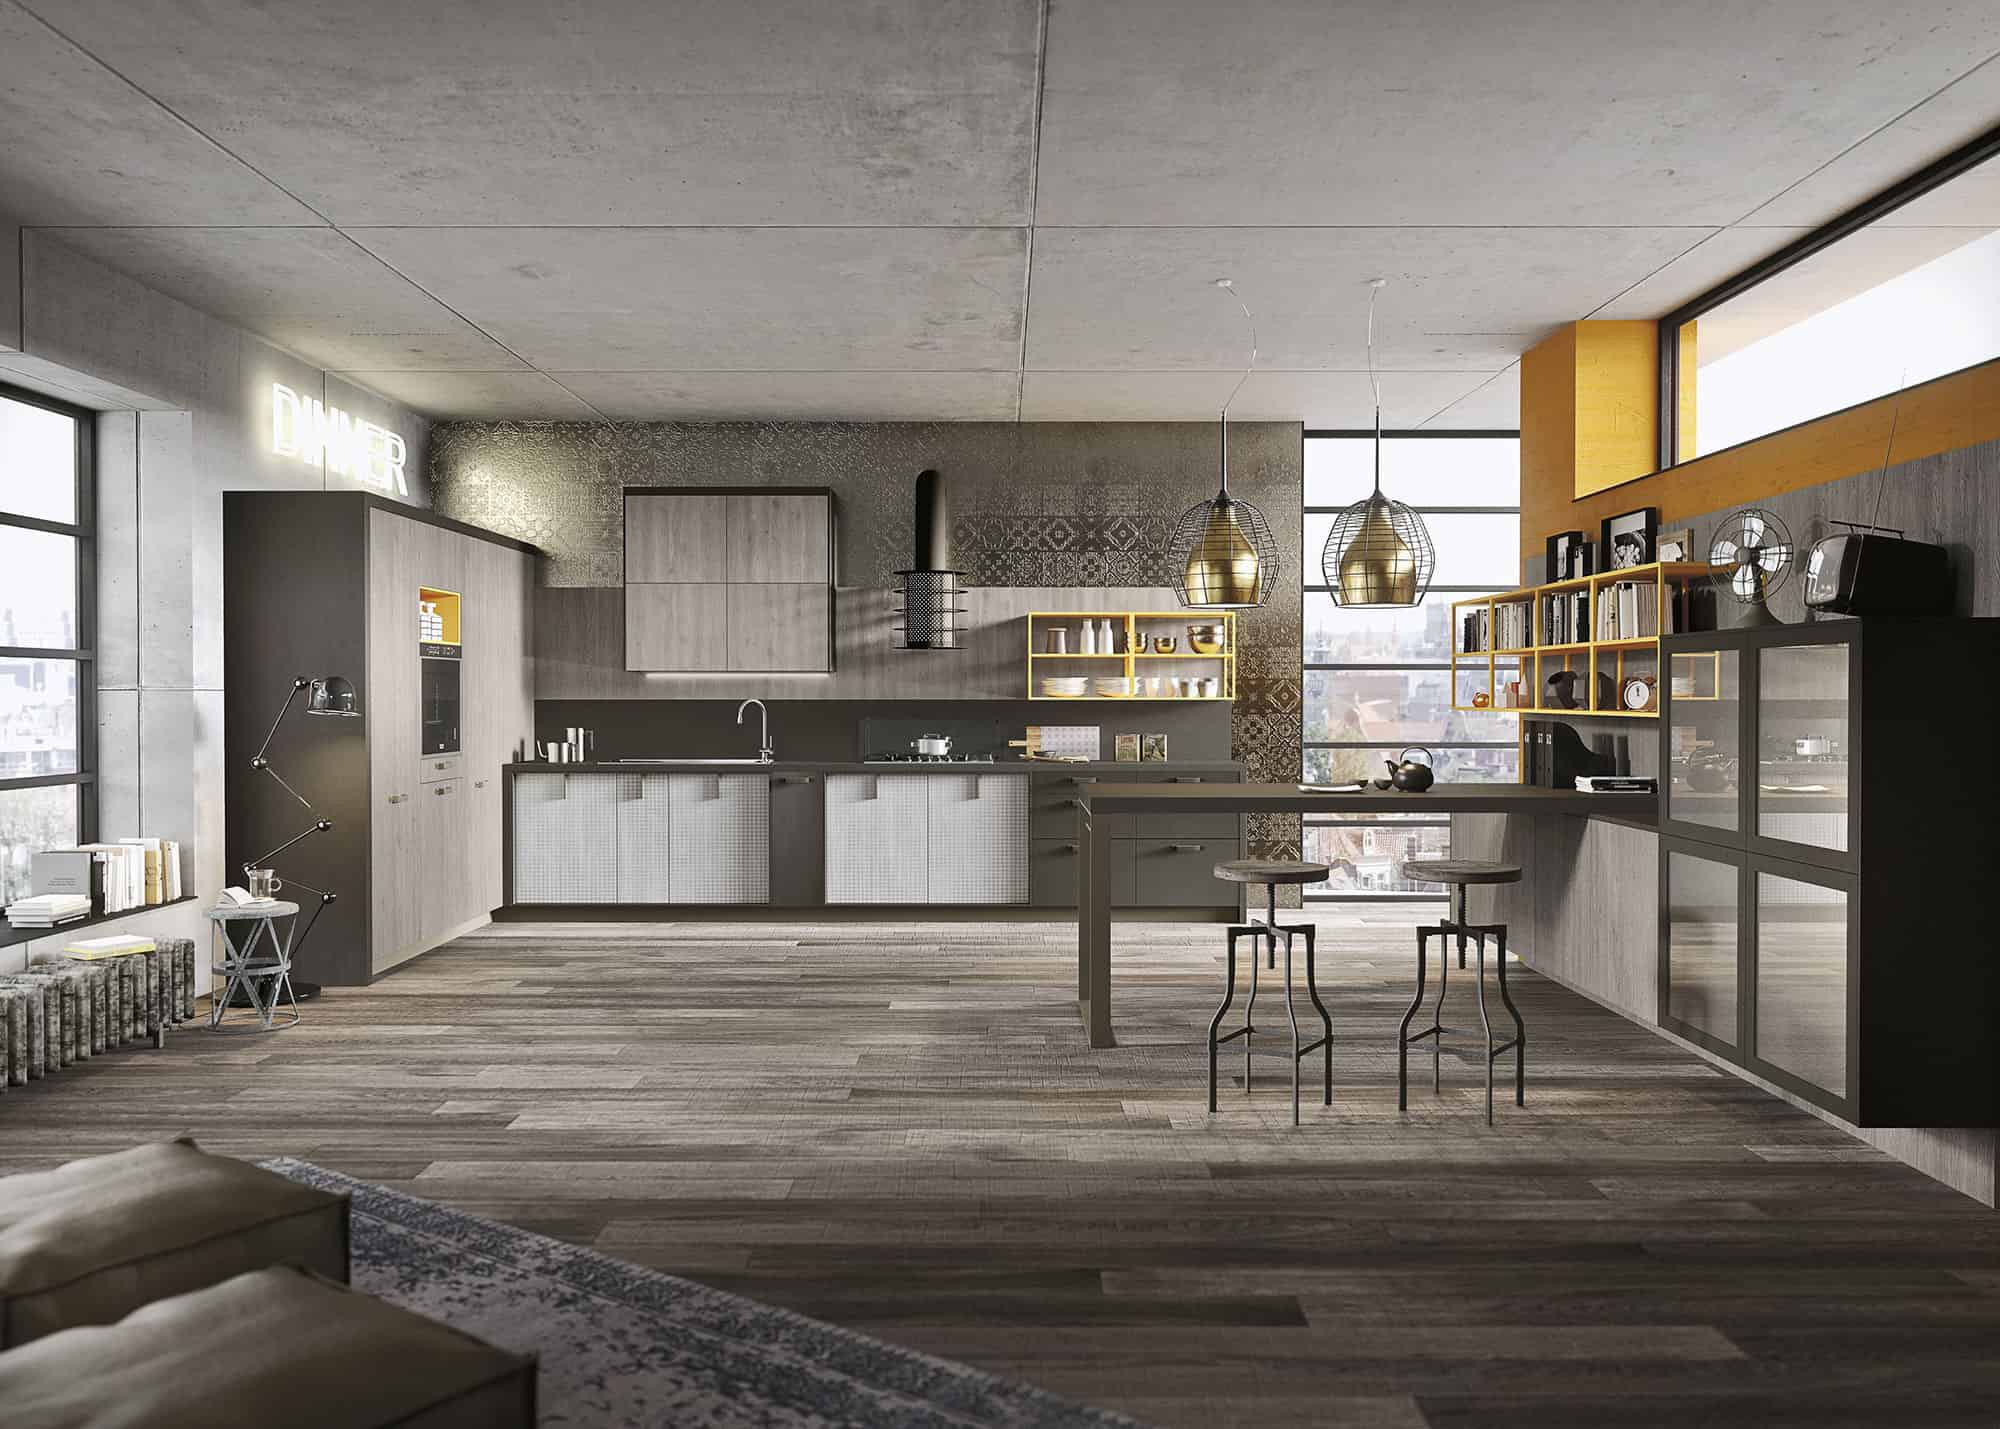 This Urban Loft Kitchen Design (above) Uses The Same Elements As The One  With The Modern Look But It Features The Weathered Looking U201cFossil Oaku201d  Melamine ... Part 13